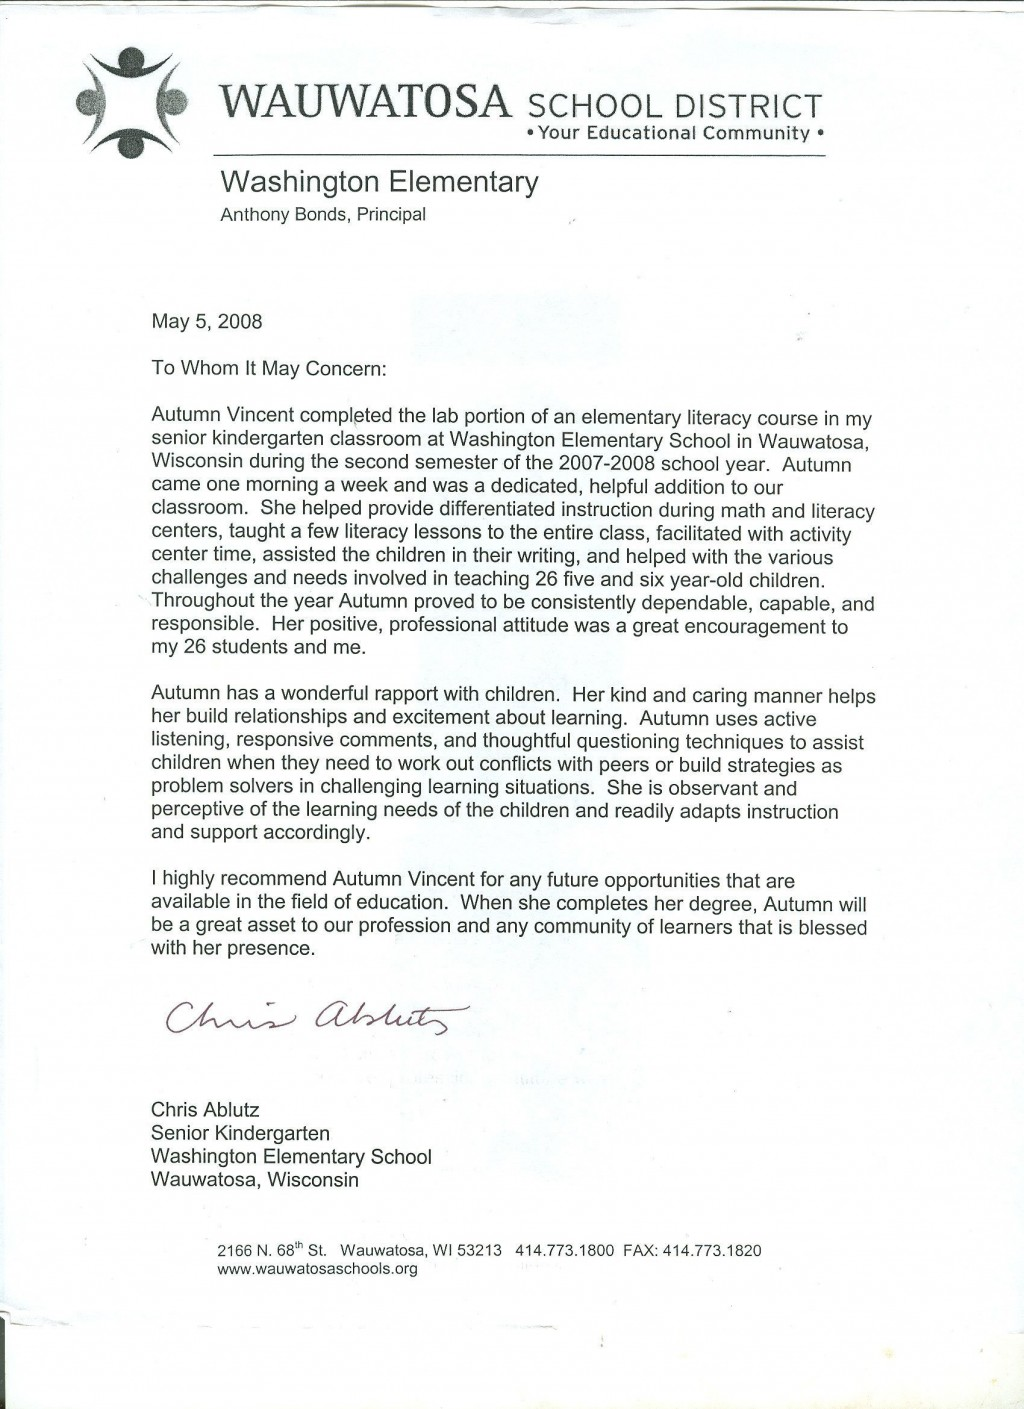 006 Stirring Letter Of Recommendation For Student Teacher From Cooperating Template Image Large